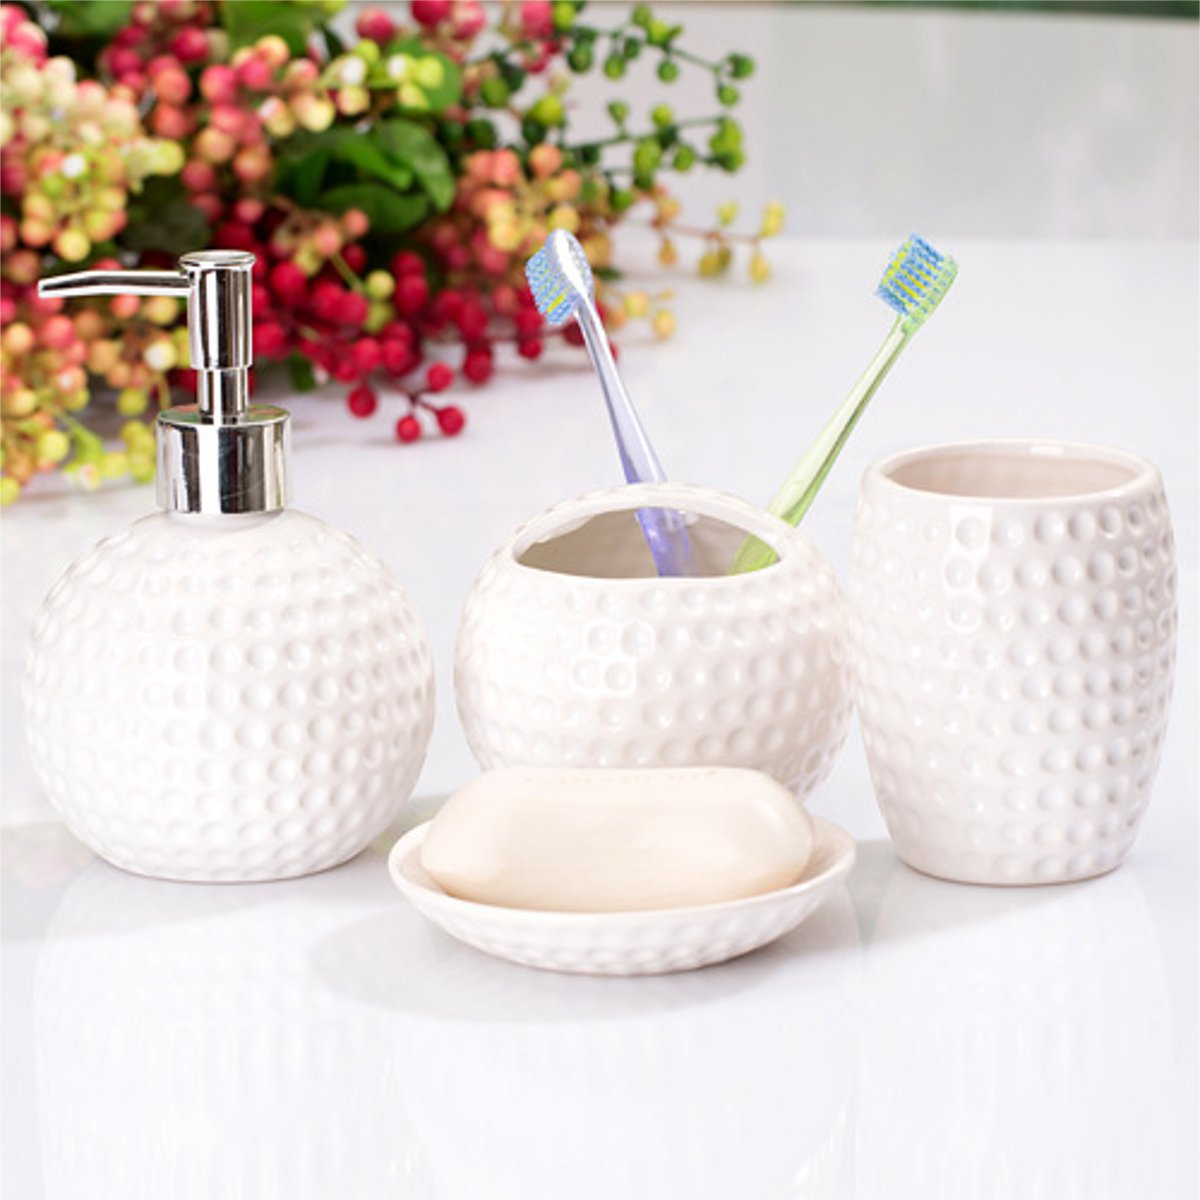 4PCS Ceramic Bathroom Accessories Set Soap Dish Cup Tumbler Toothbrush Dispenser Toothpaste Holder Shampoo Bottle Black White image